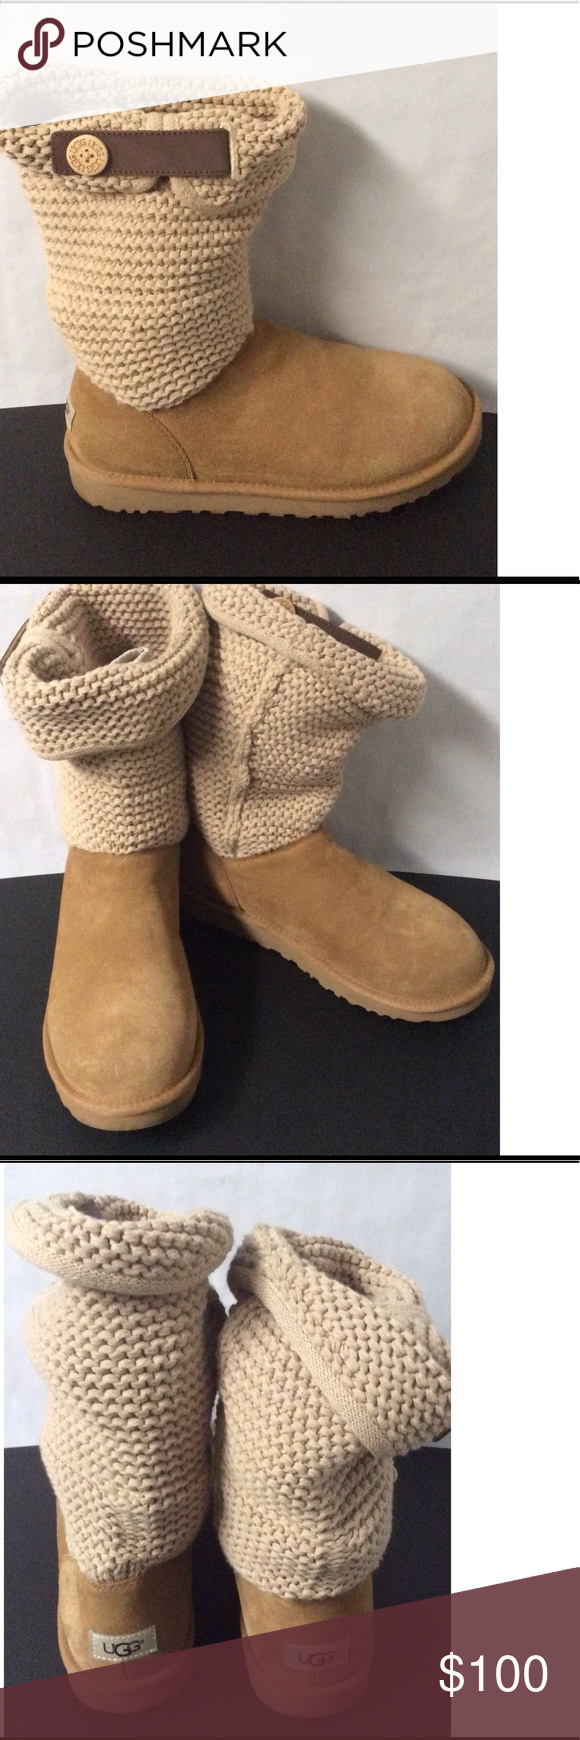 f5c6616bc2b Women Shaina UGG Boots Size 10 acrylic , cotton , suede. leather ...